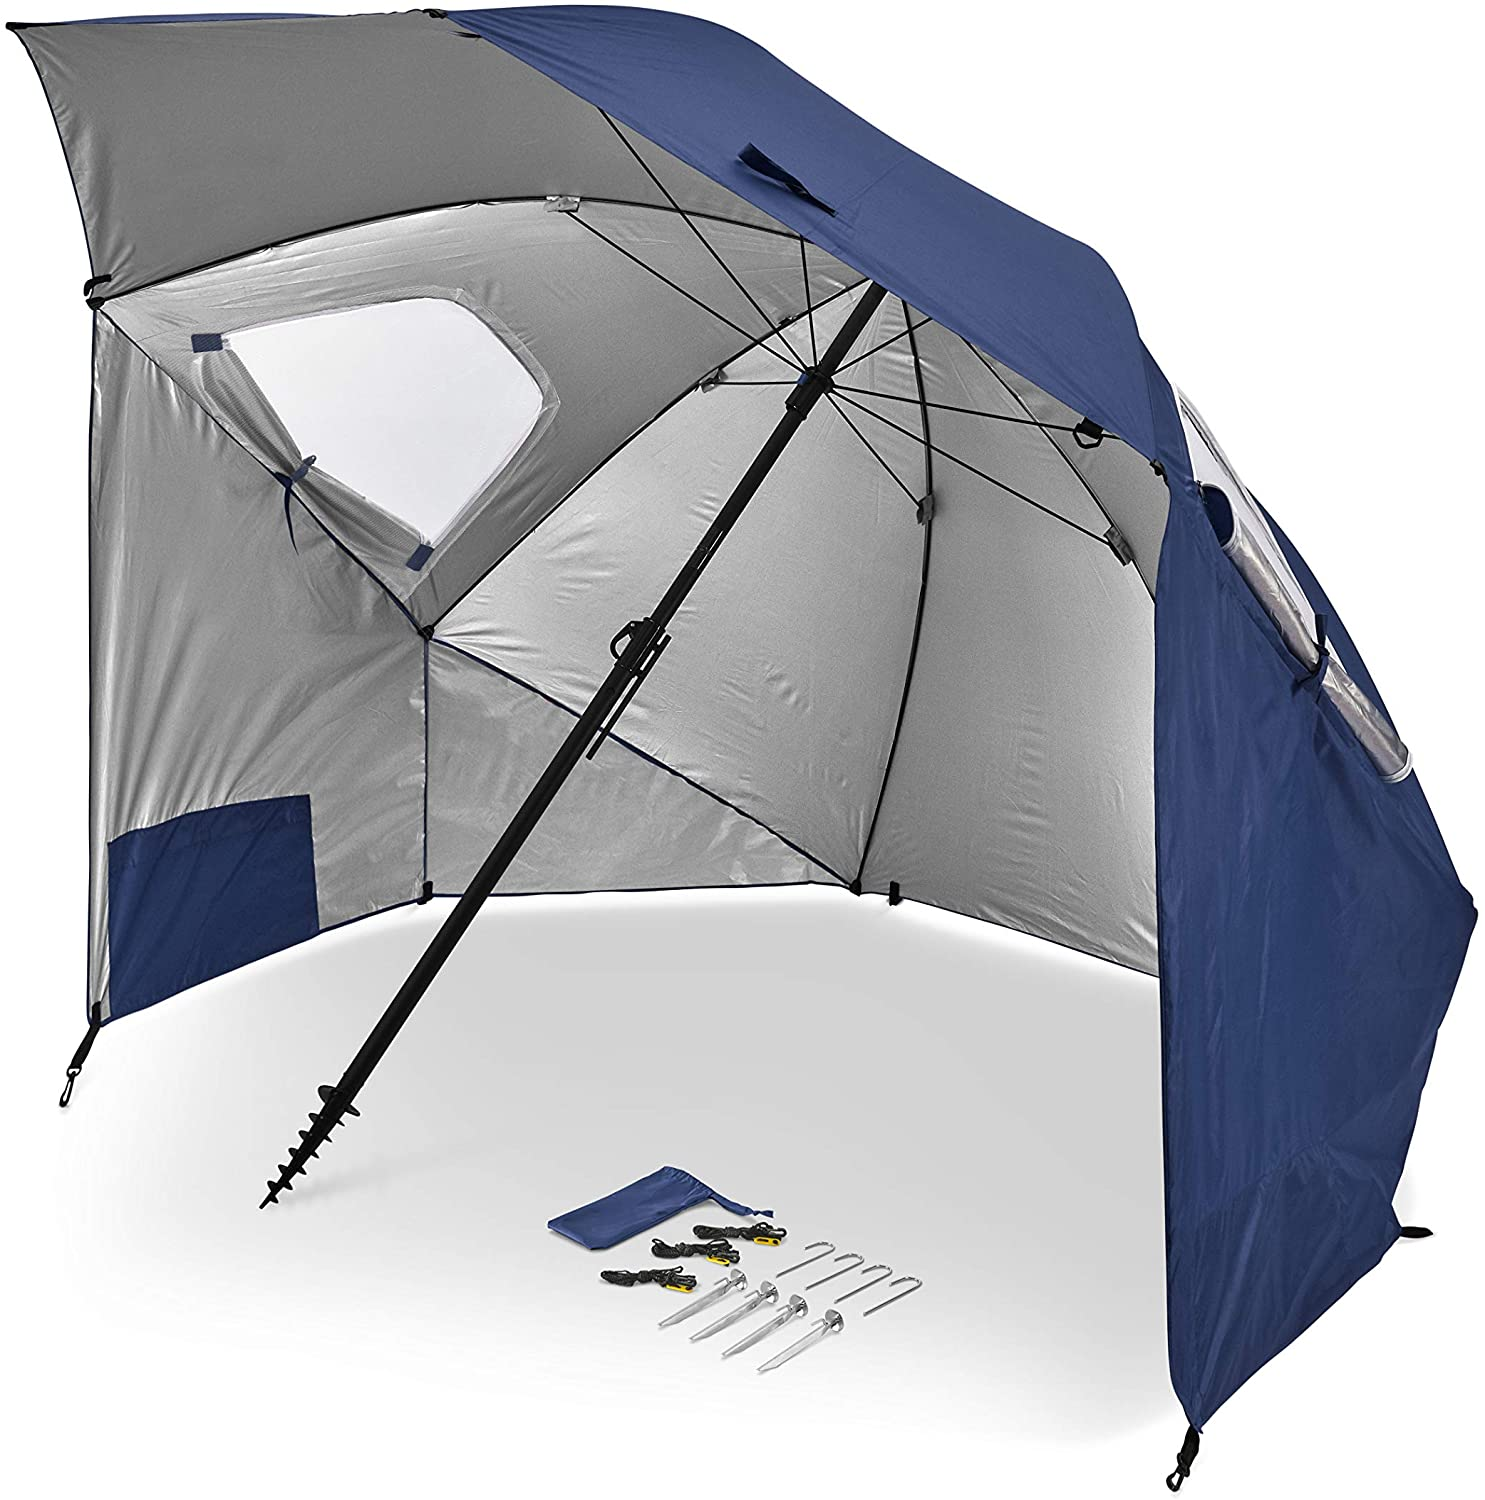 Sport brella for all kinds of weather